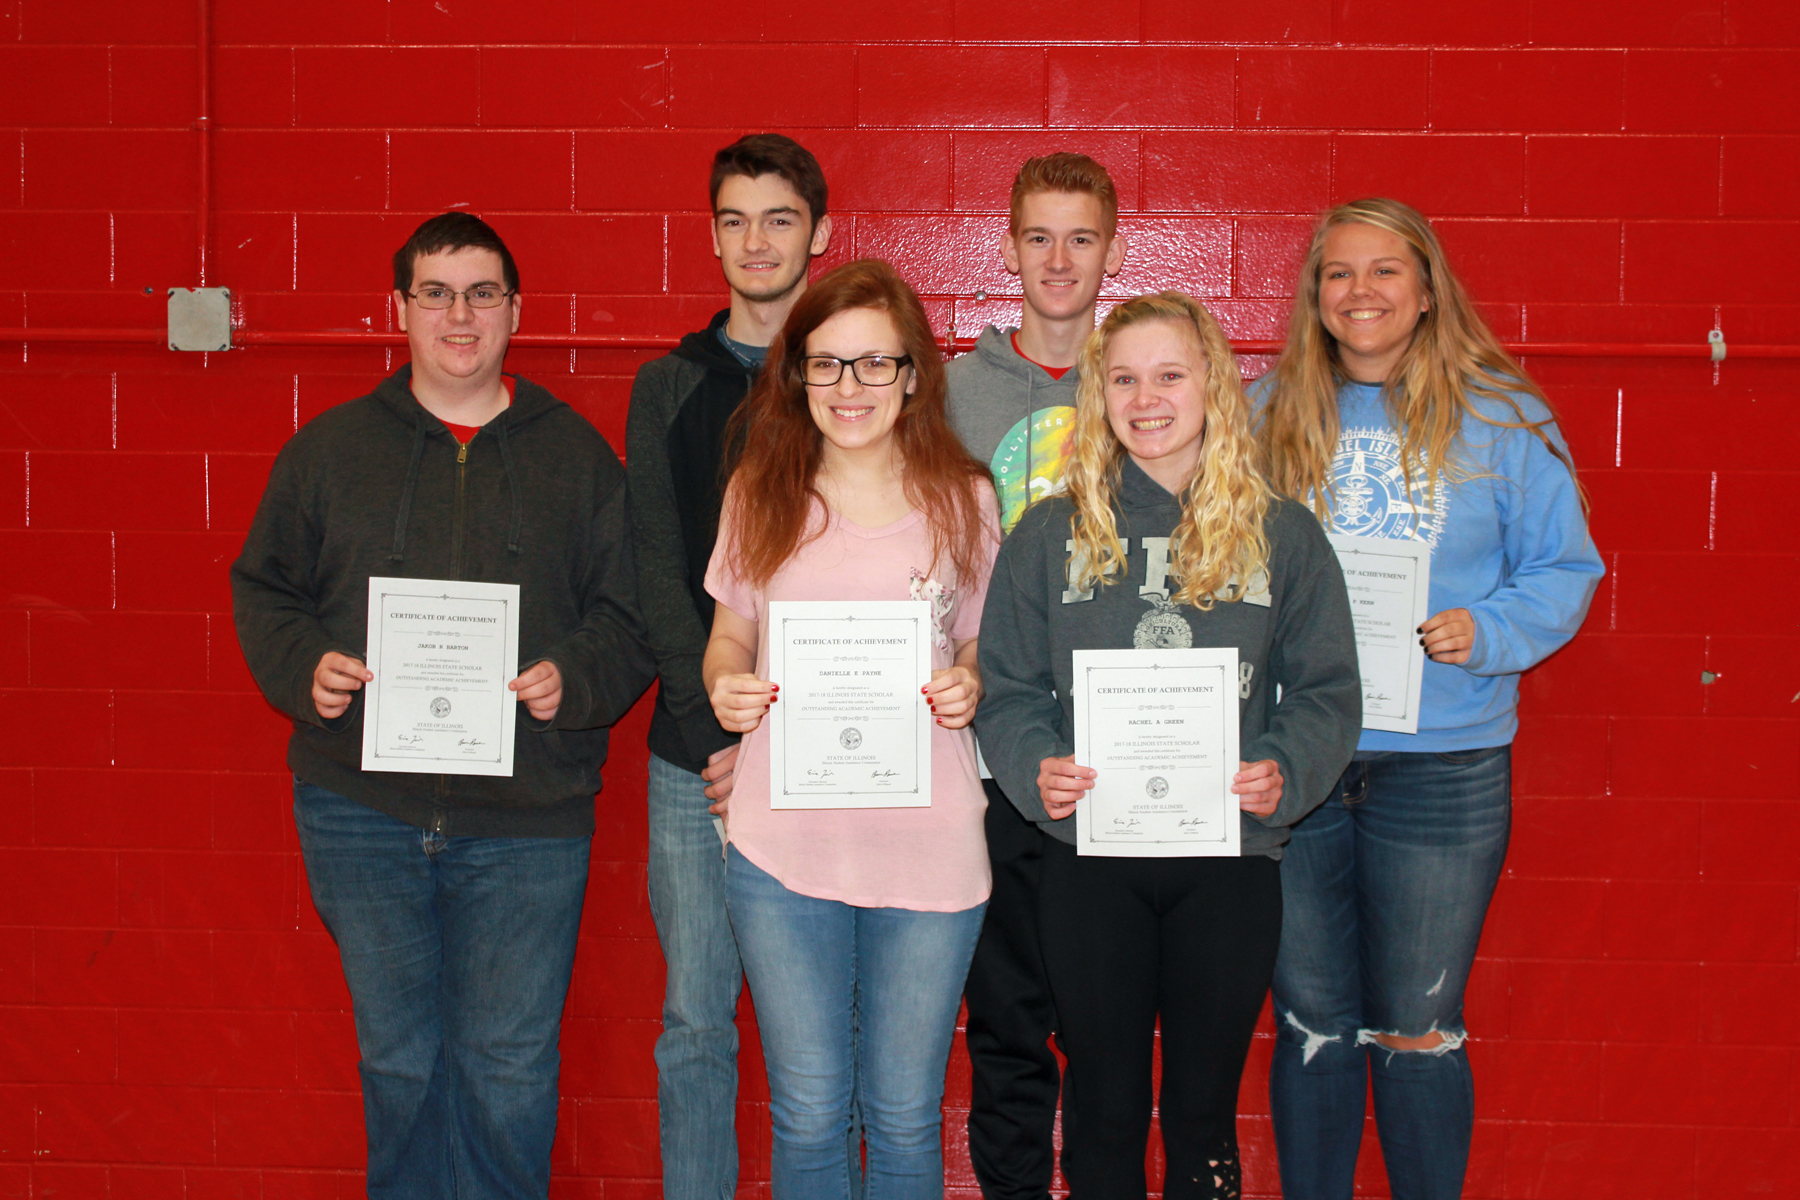 VCHS Holds Awards Day